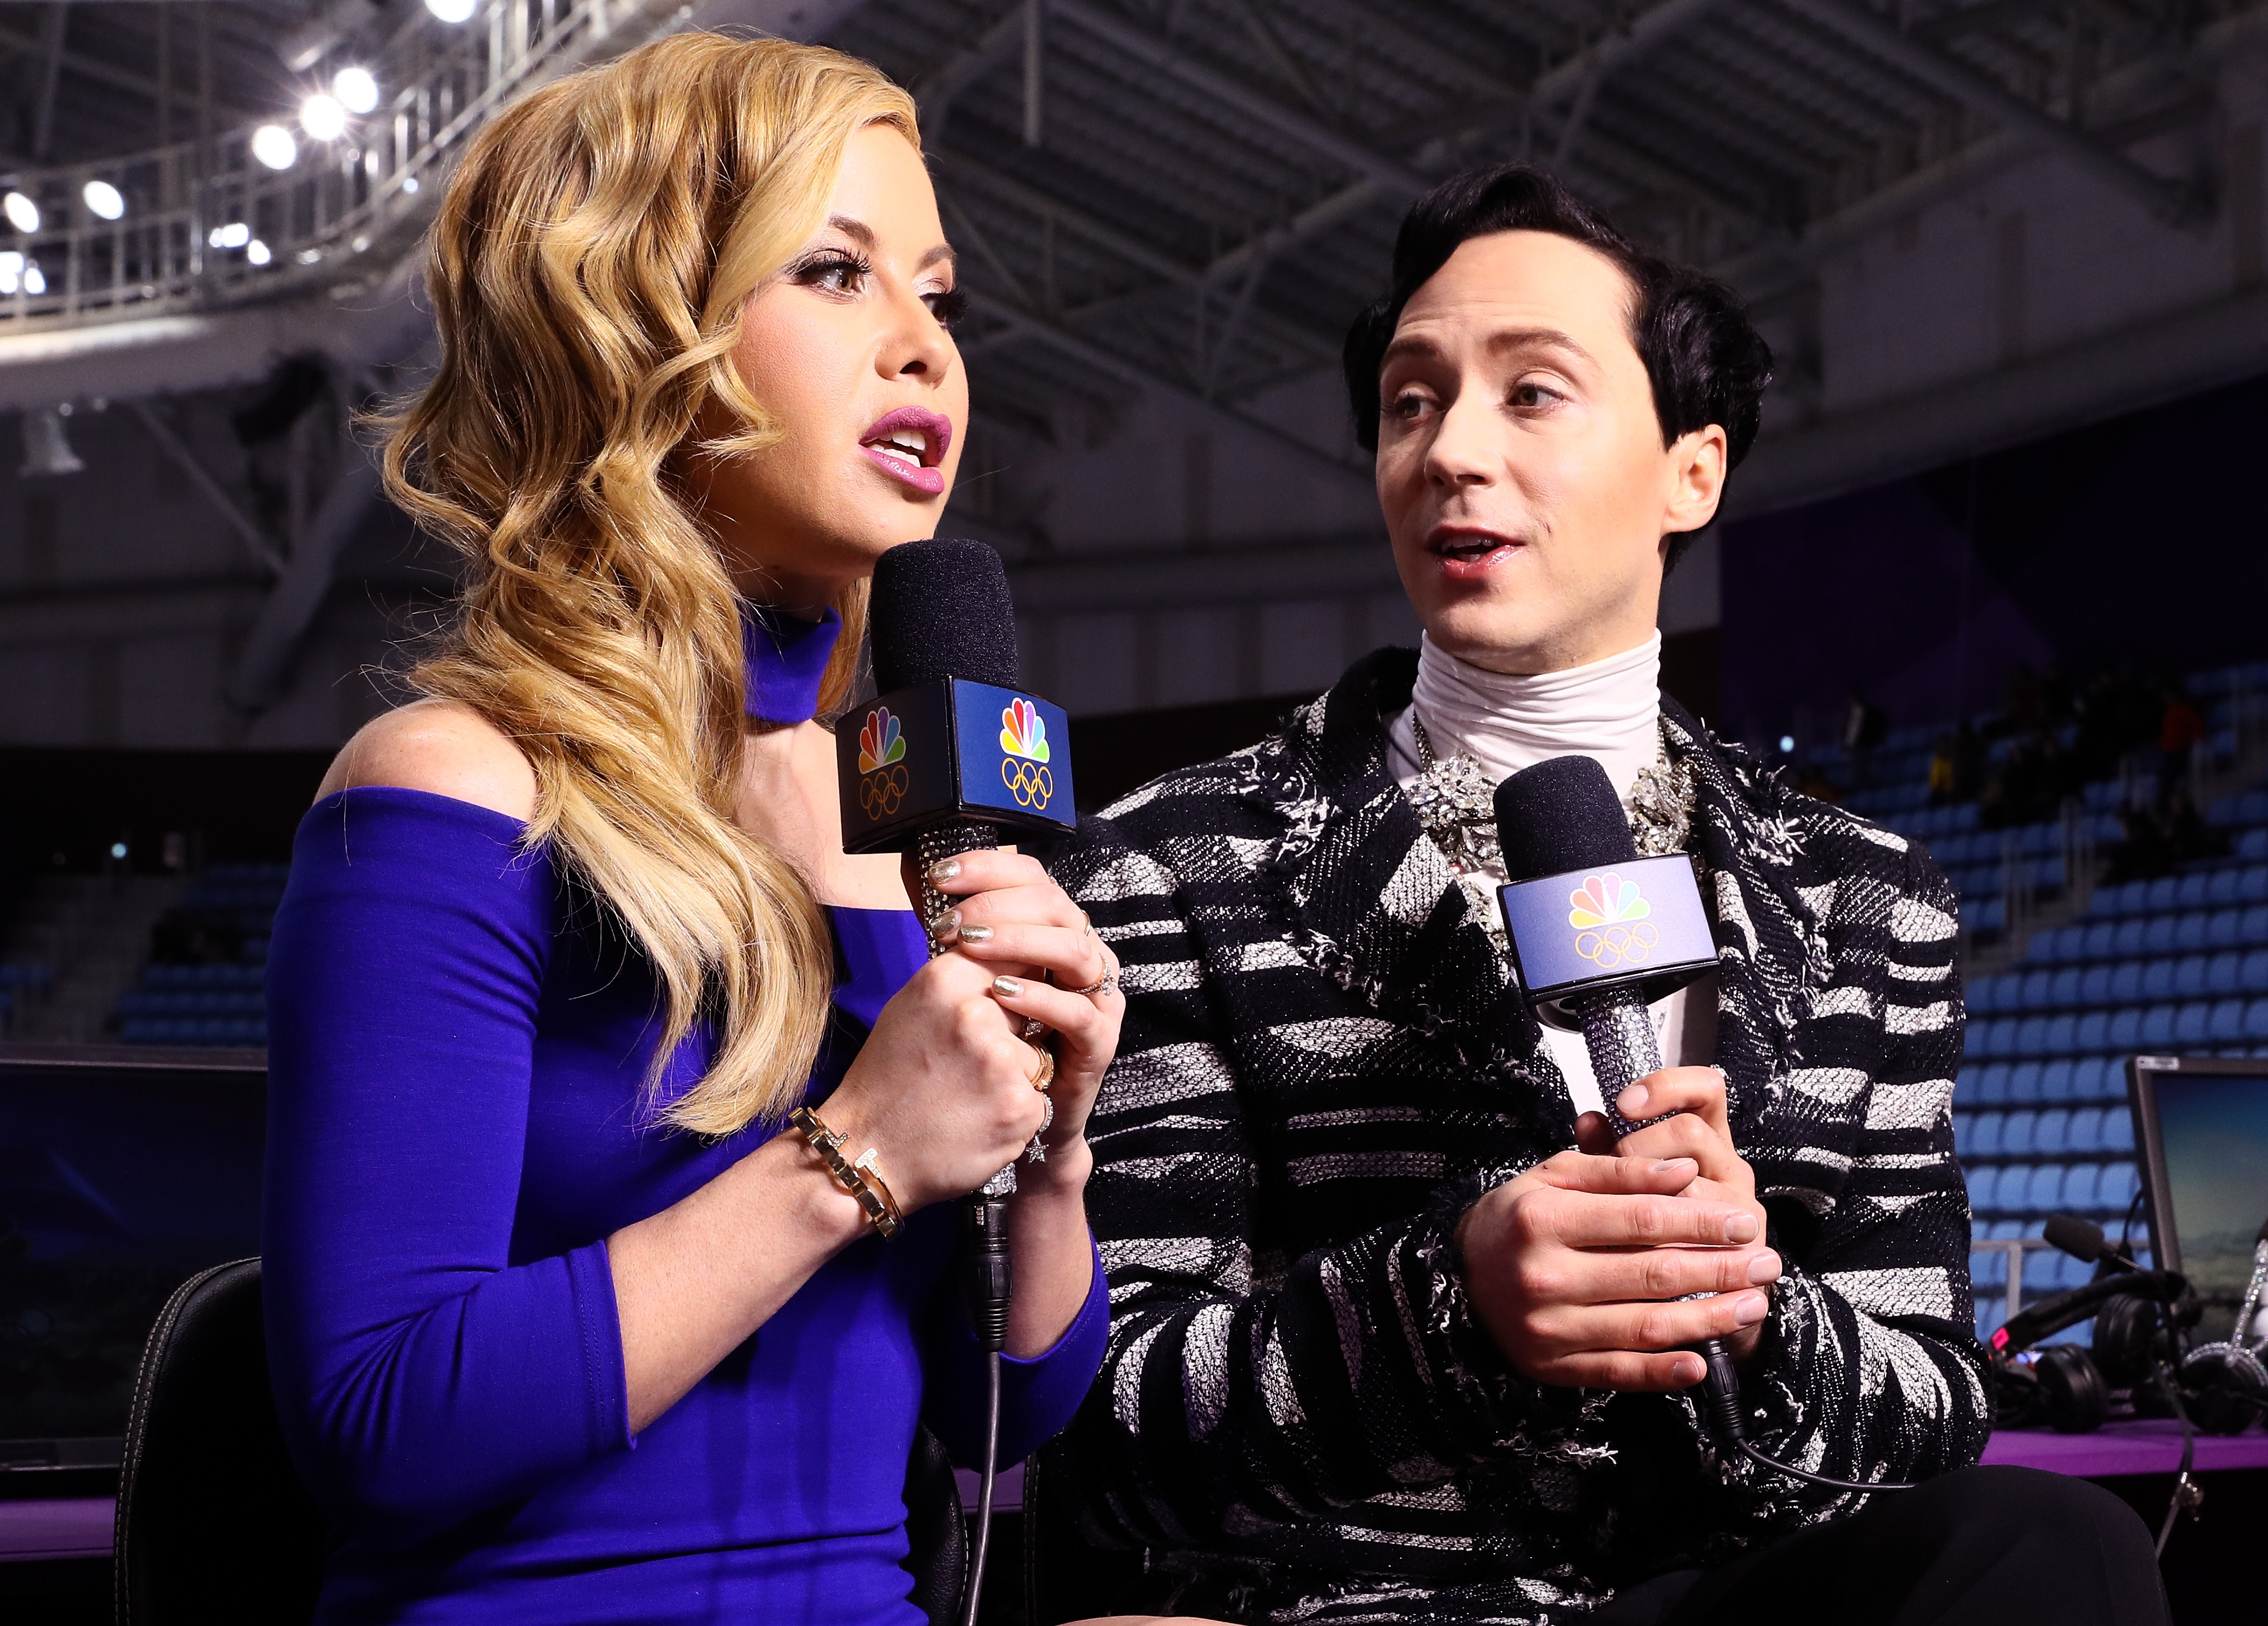 Figure skating announcers Tara Lipinski and Johnny Weir prepare for the pair skating short program on Day 5 of the 2018 Winter Olympics in Pyeongchang.